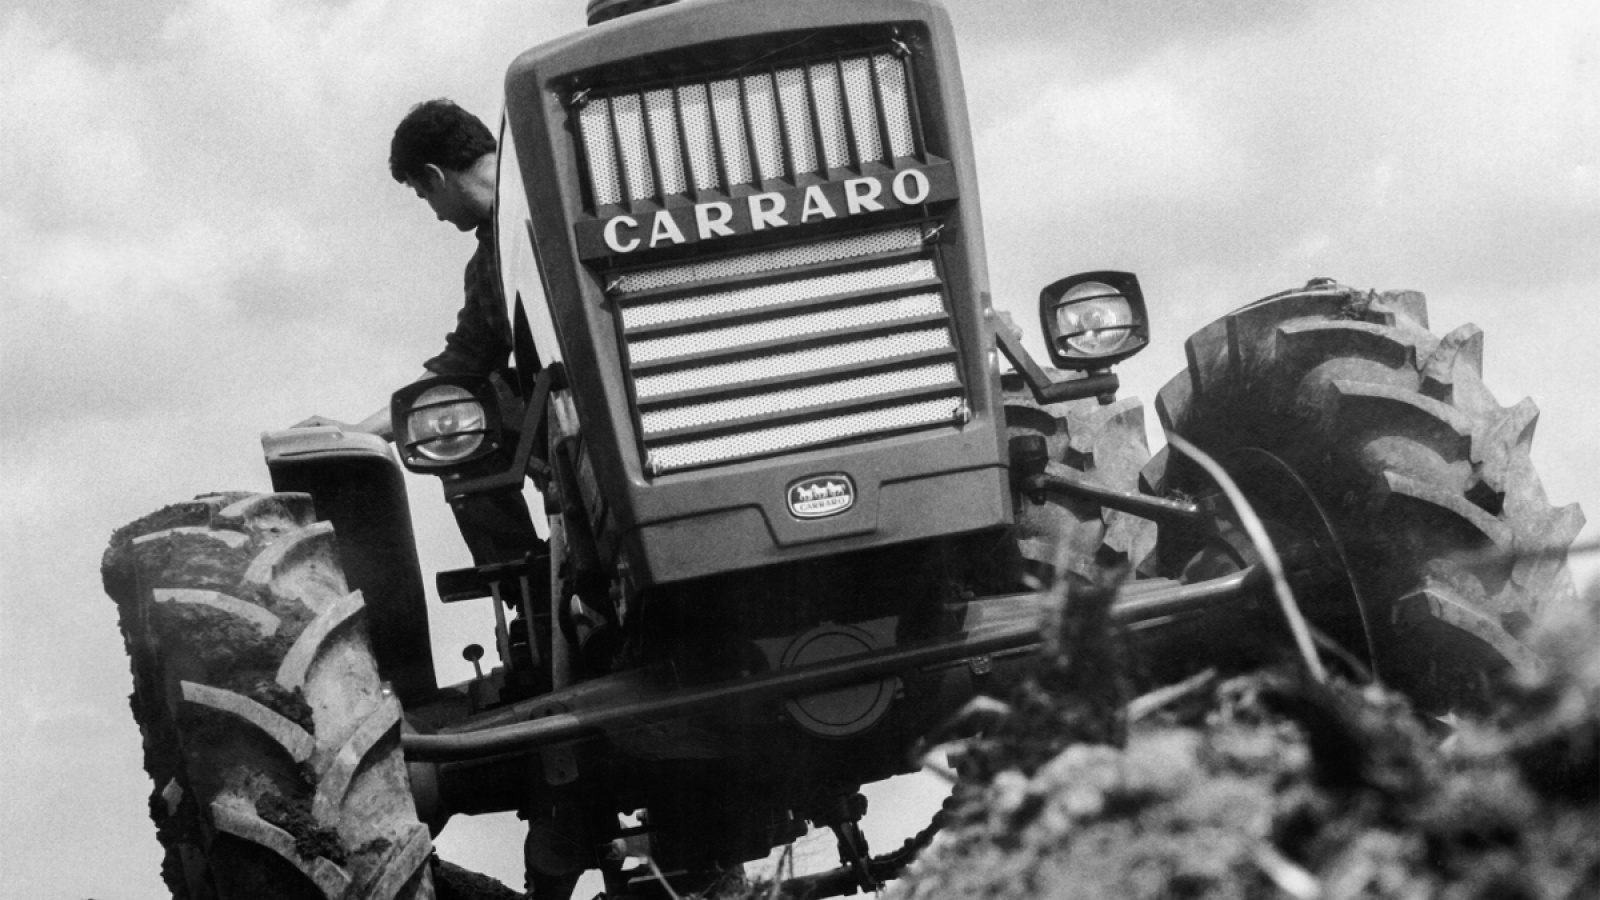 a machine designed to facilitate and speed up one of the farmer's most important processes. Carraro Tractors were on a fast track in evolution so in 1964 we built the first 4 wheel drive